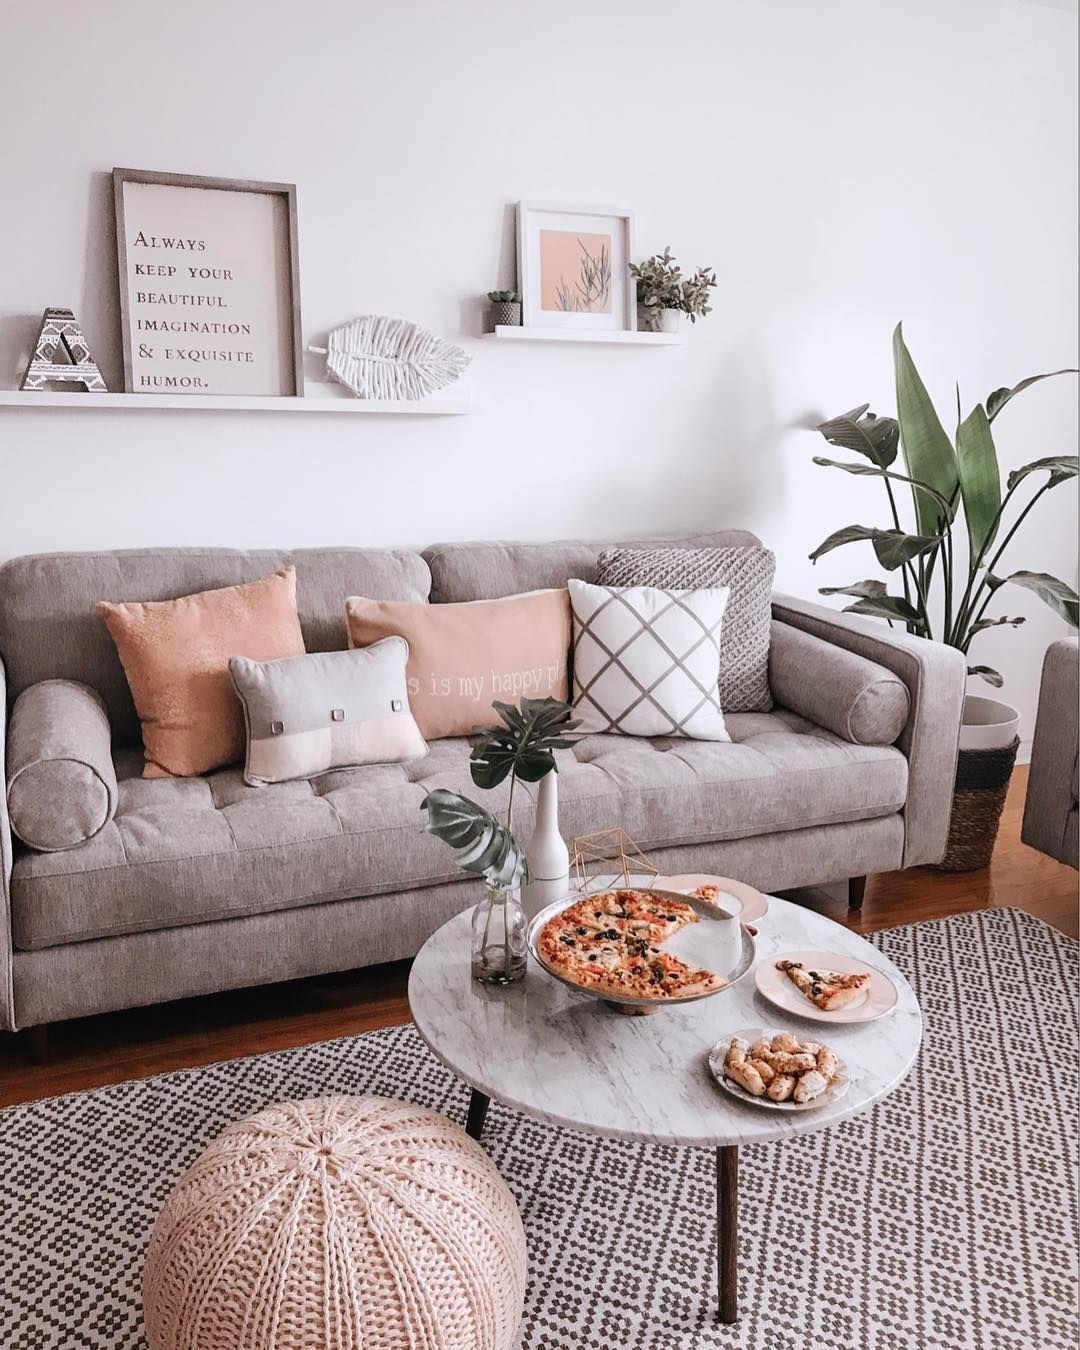 Pizza Inspo Pizza At Home Modern Living Room Modern Boho Living Room Gray Couch Patterned Modern Boho Living Room Grey Couch Living Room Boho Living Room